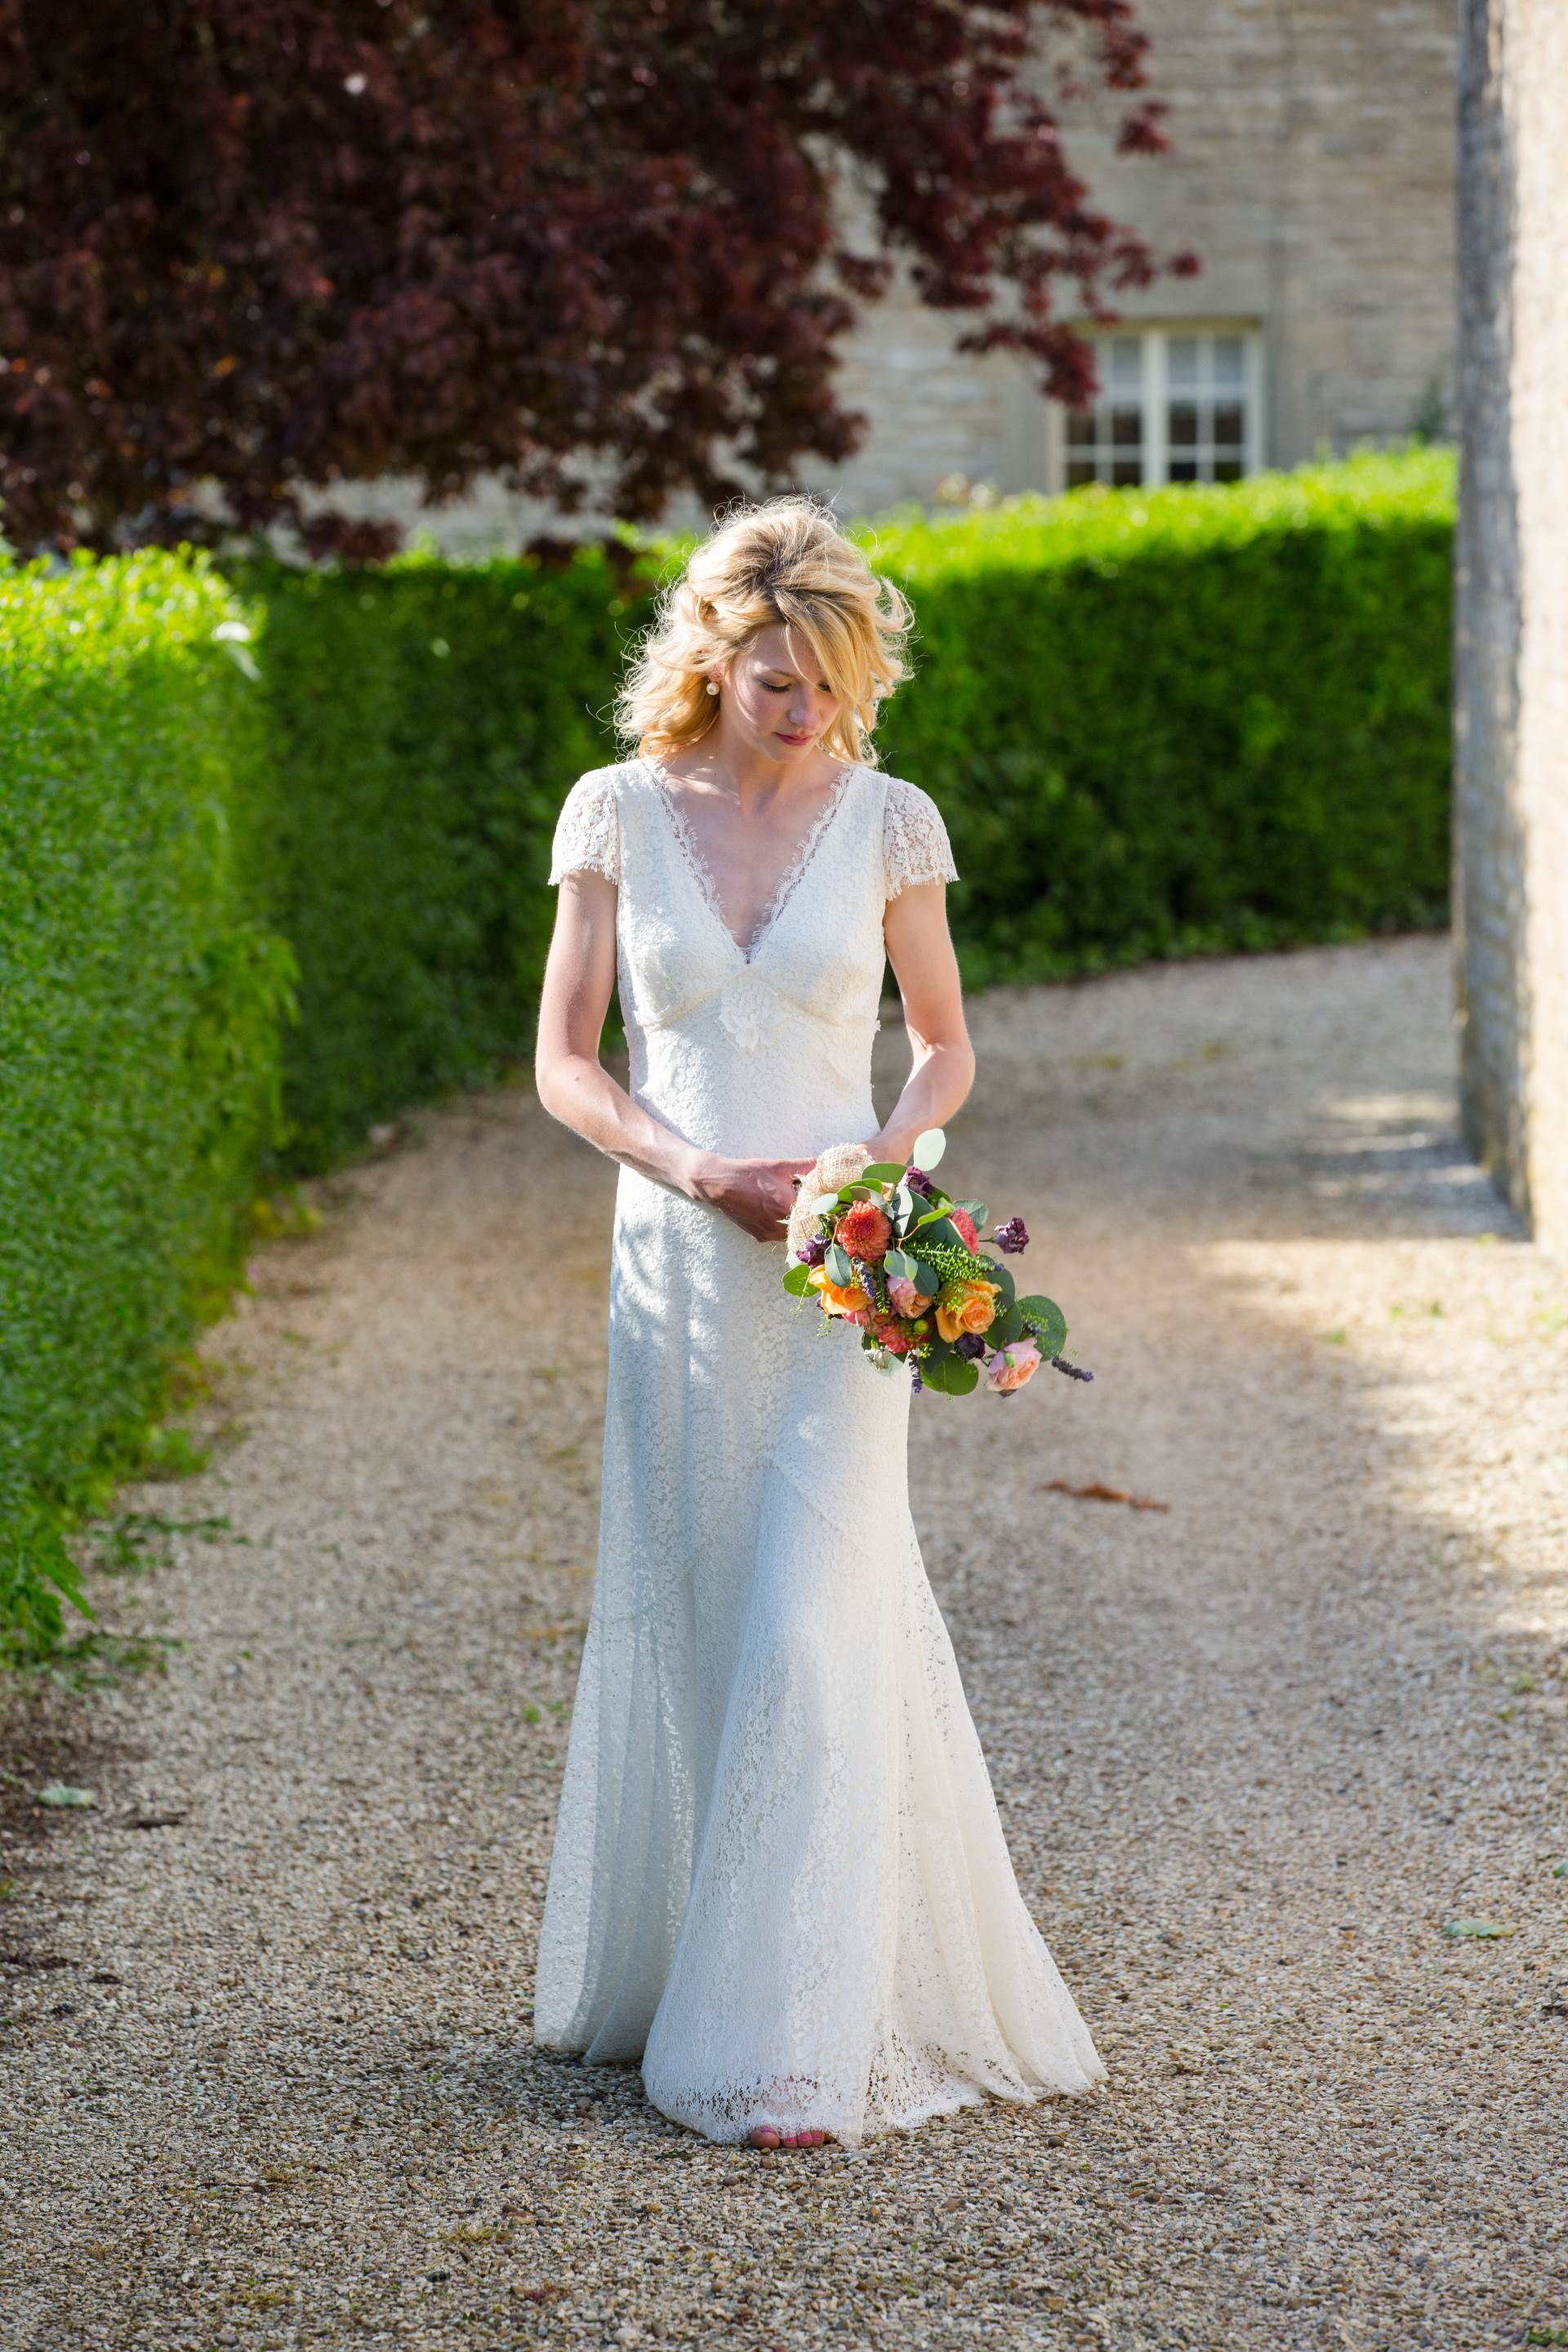 Elise by Sally Lacock as featured on the National Vintage Wedding Fair blog